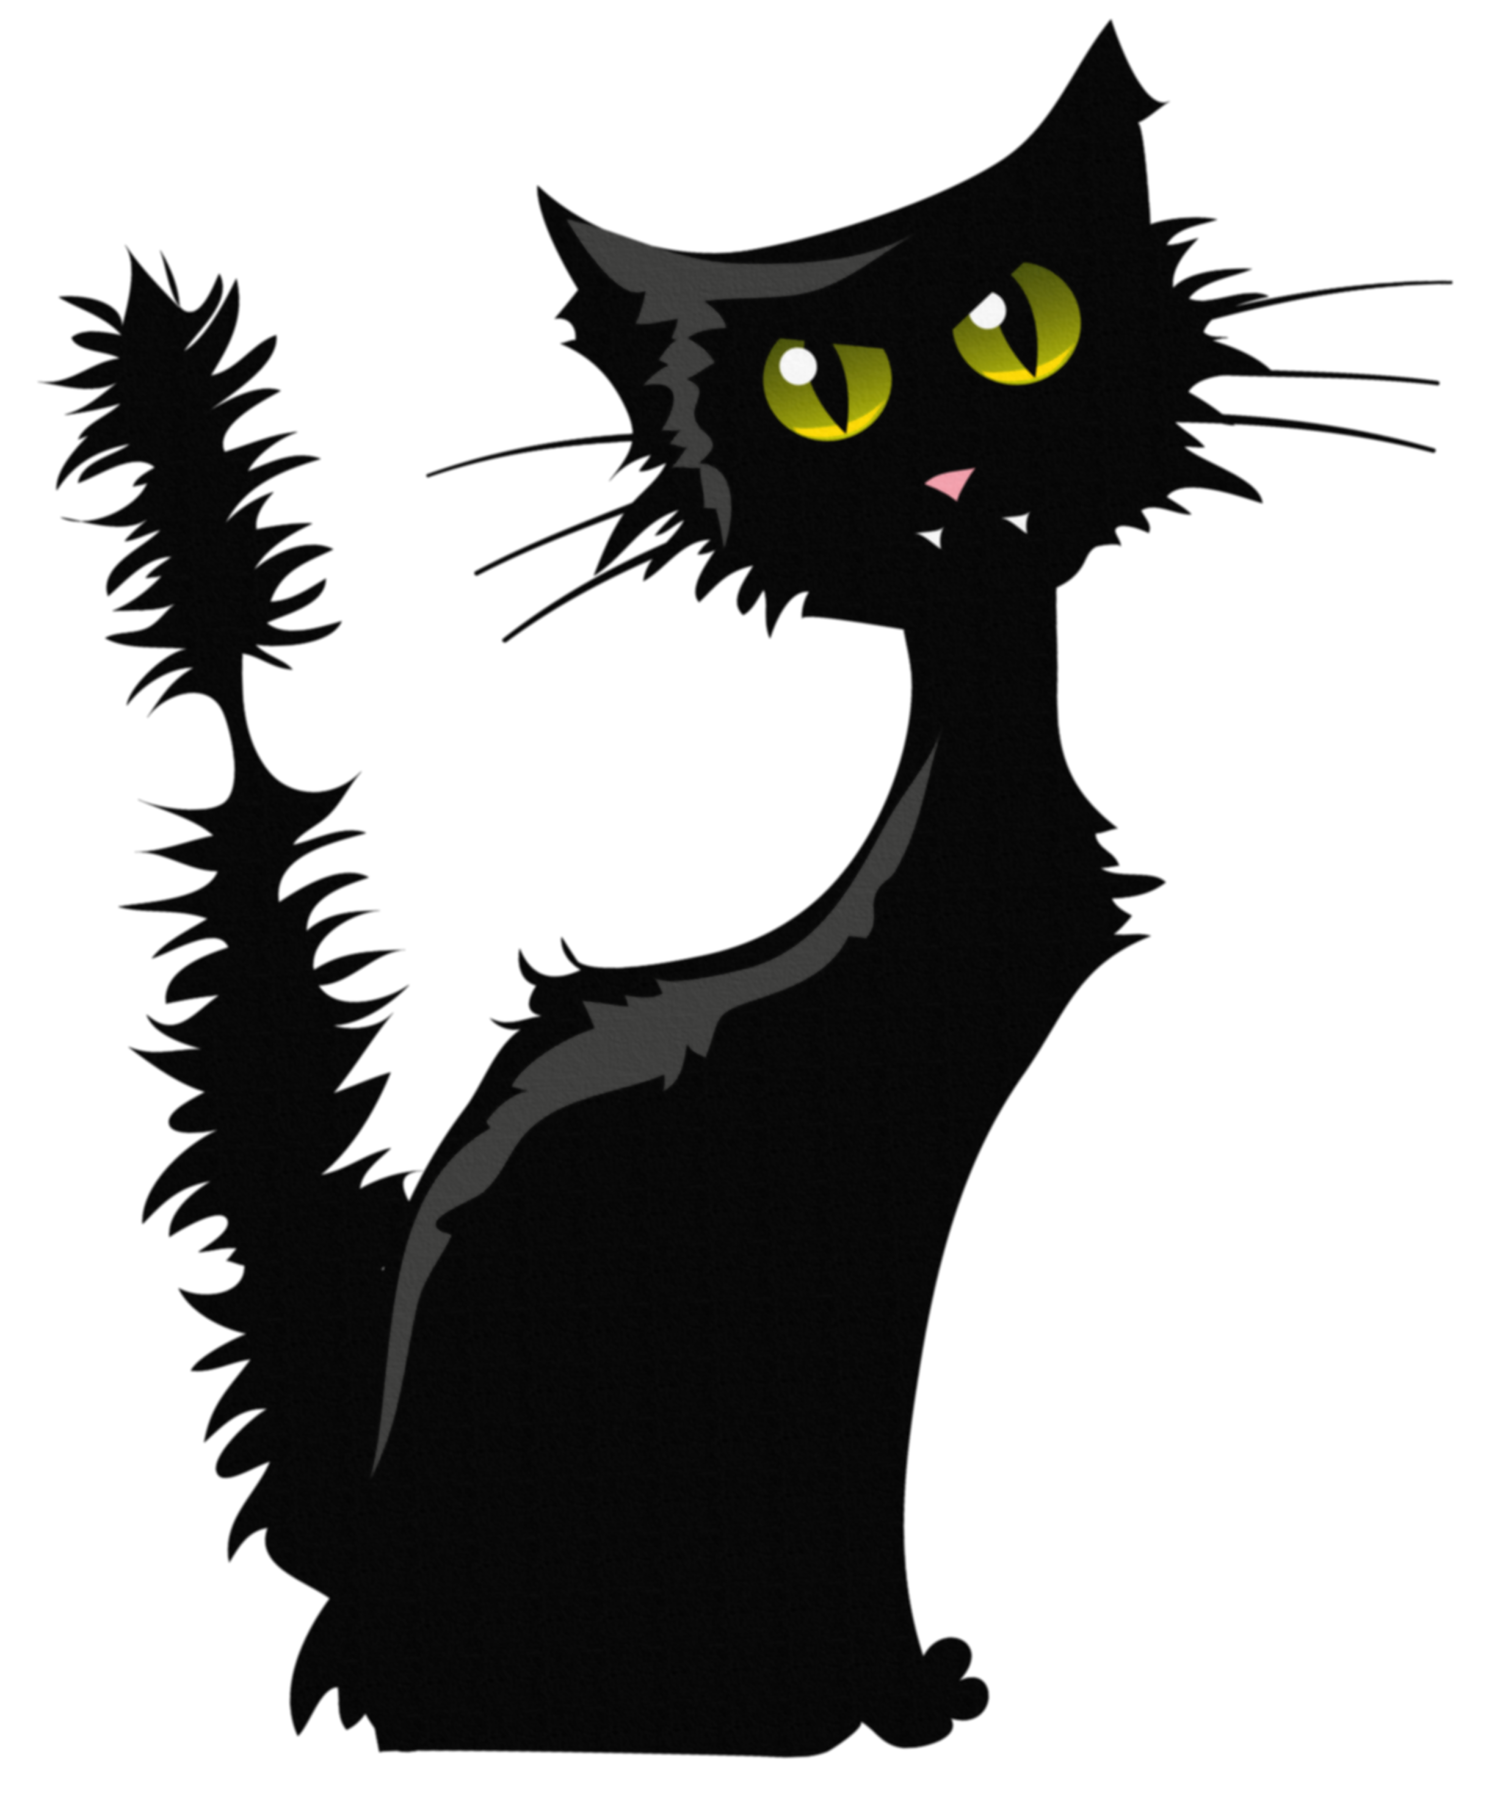 Black cat clipart png. Image gallery yopriceville high